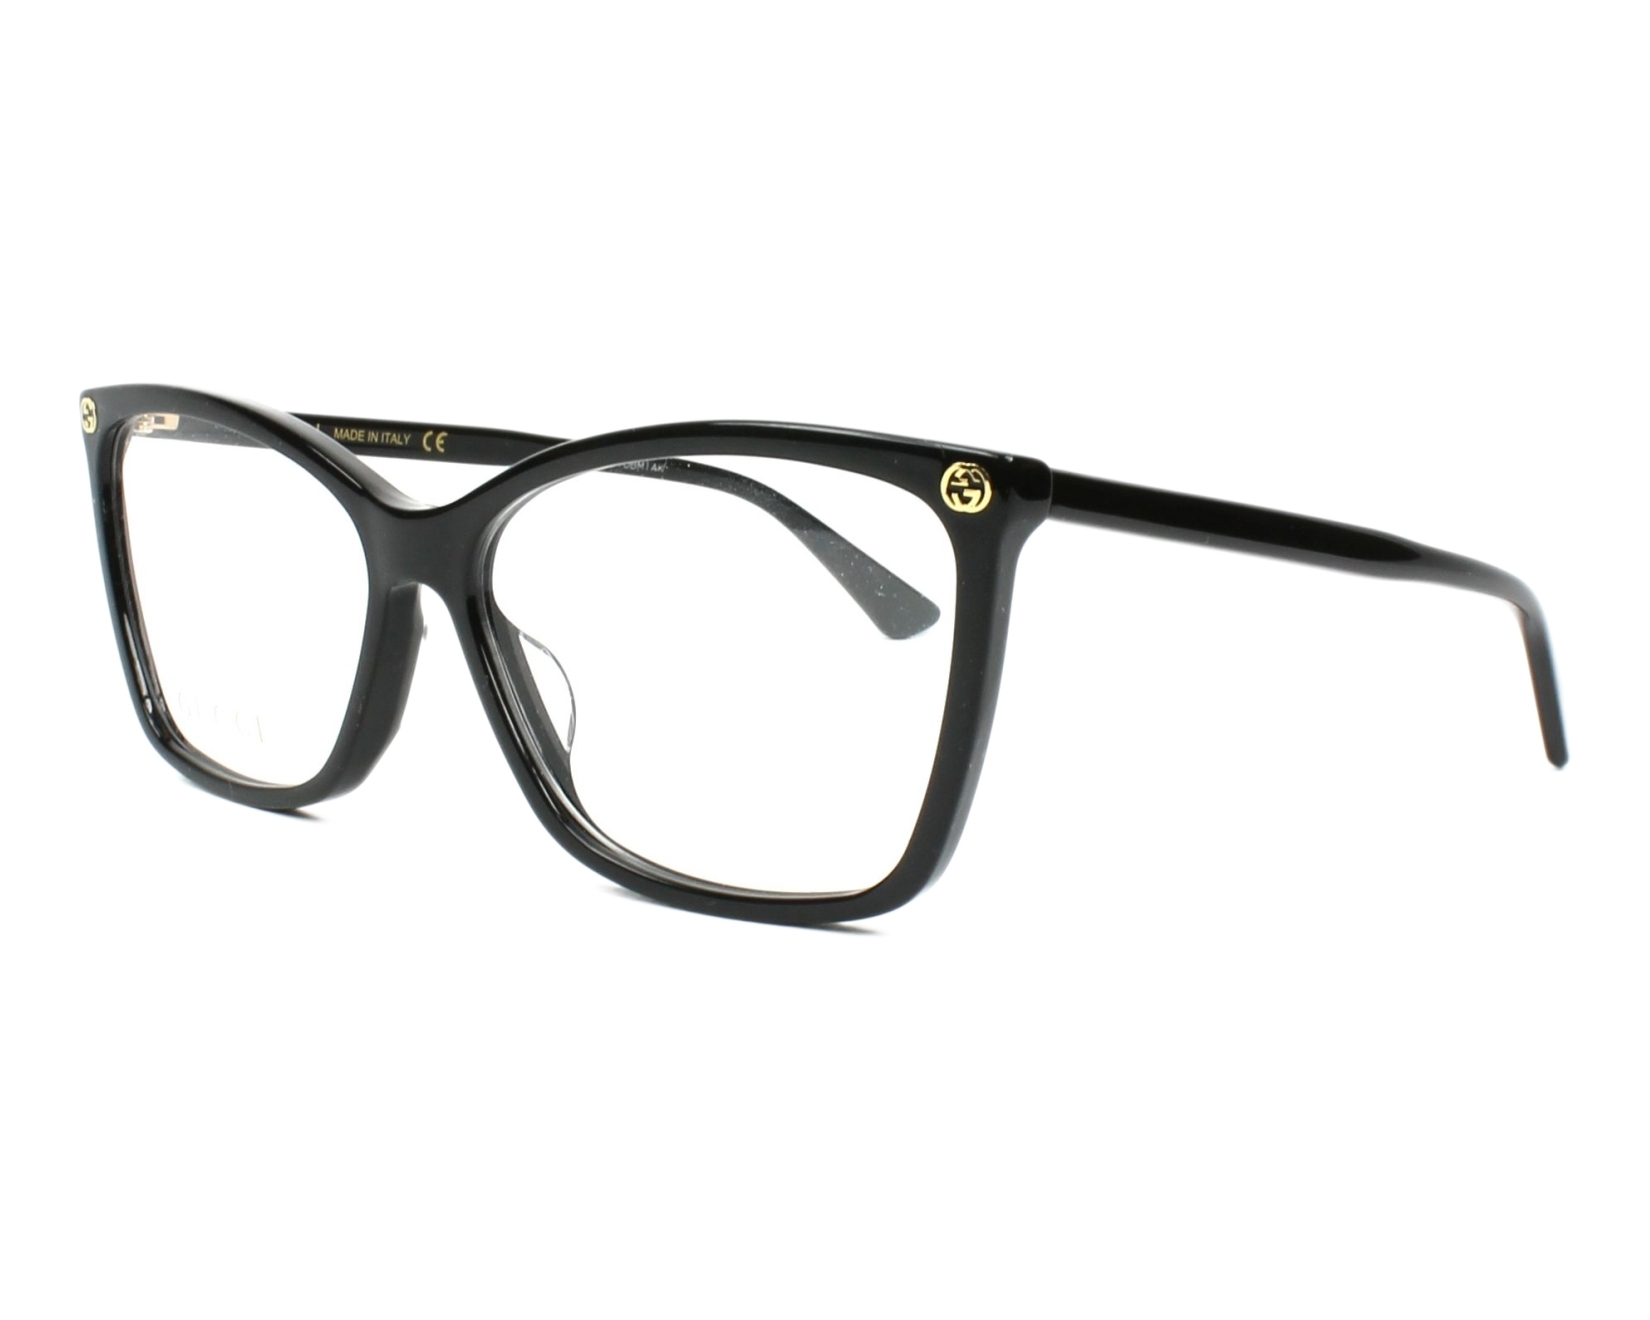 gucci glasses. eyeglasses gucci - gg00250 001 glasses